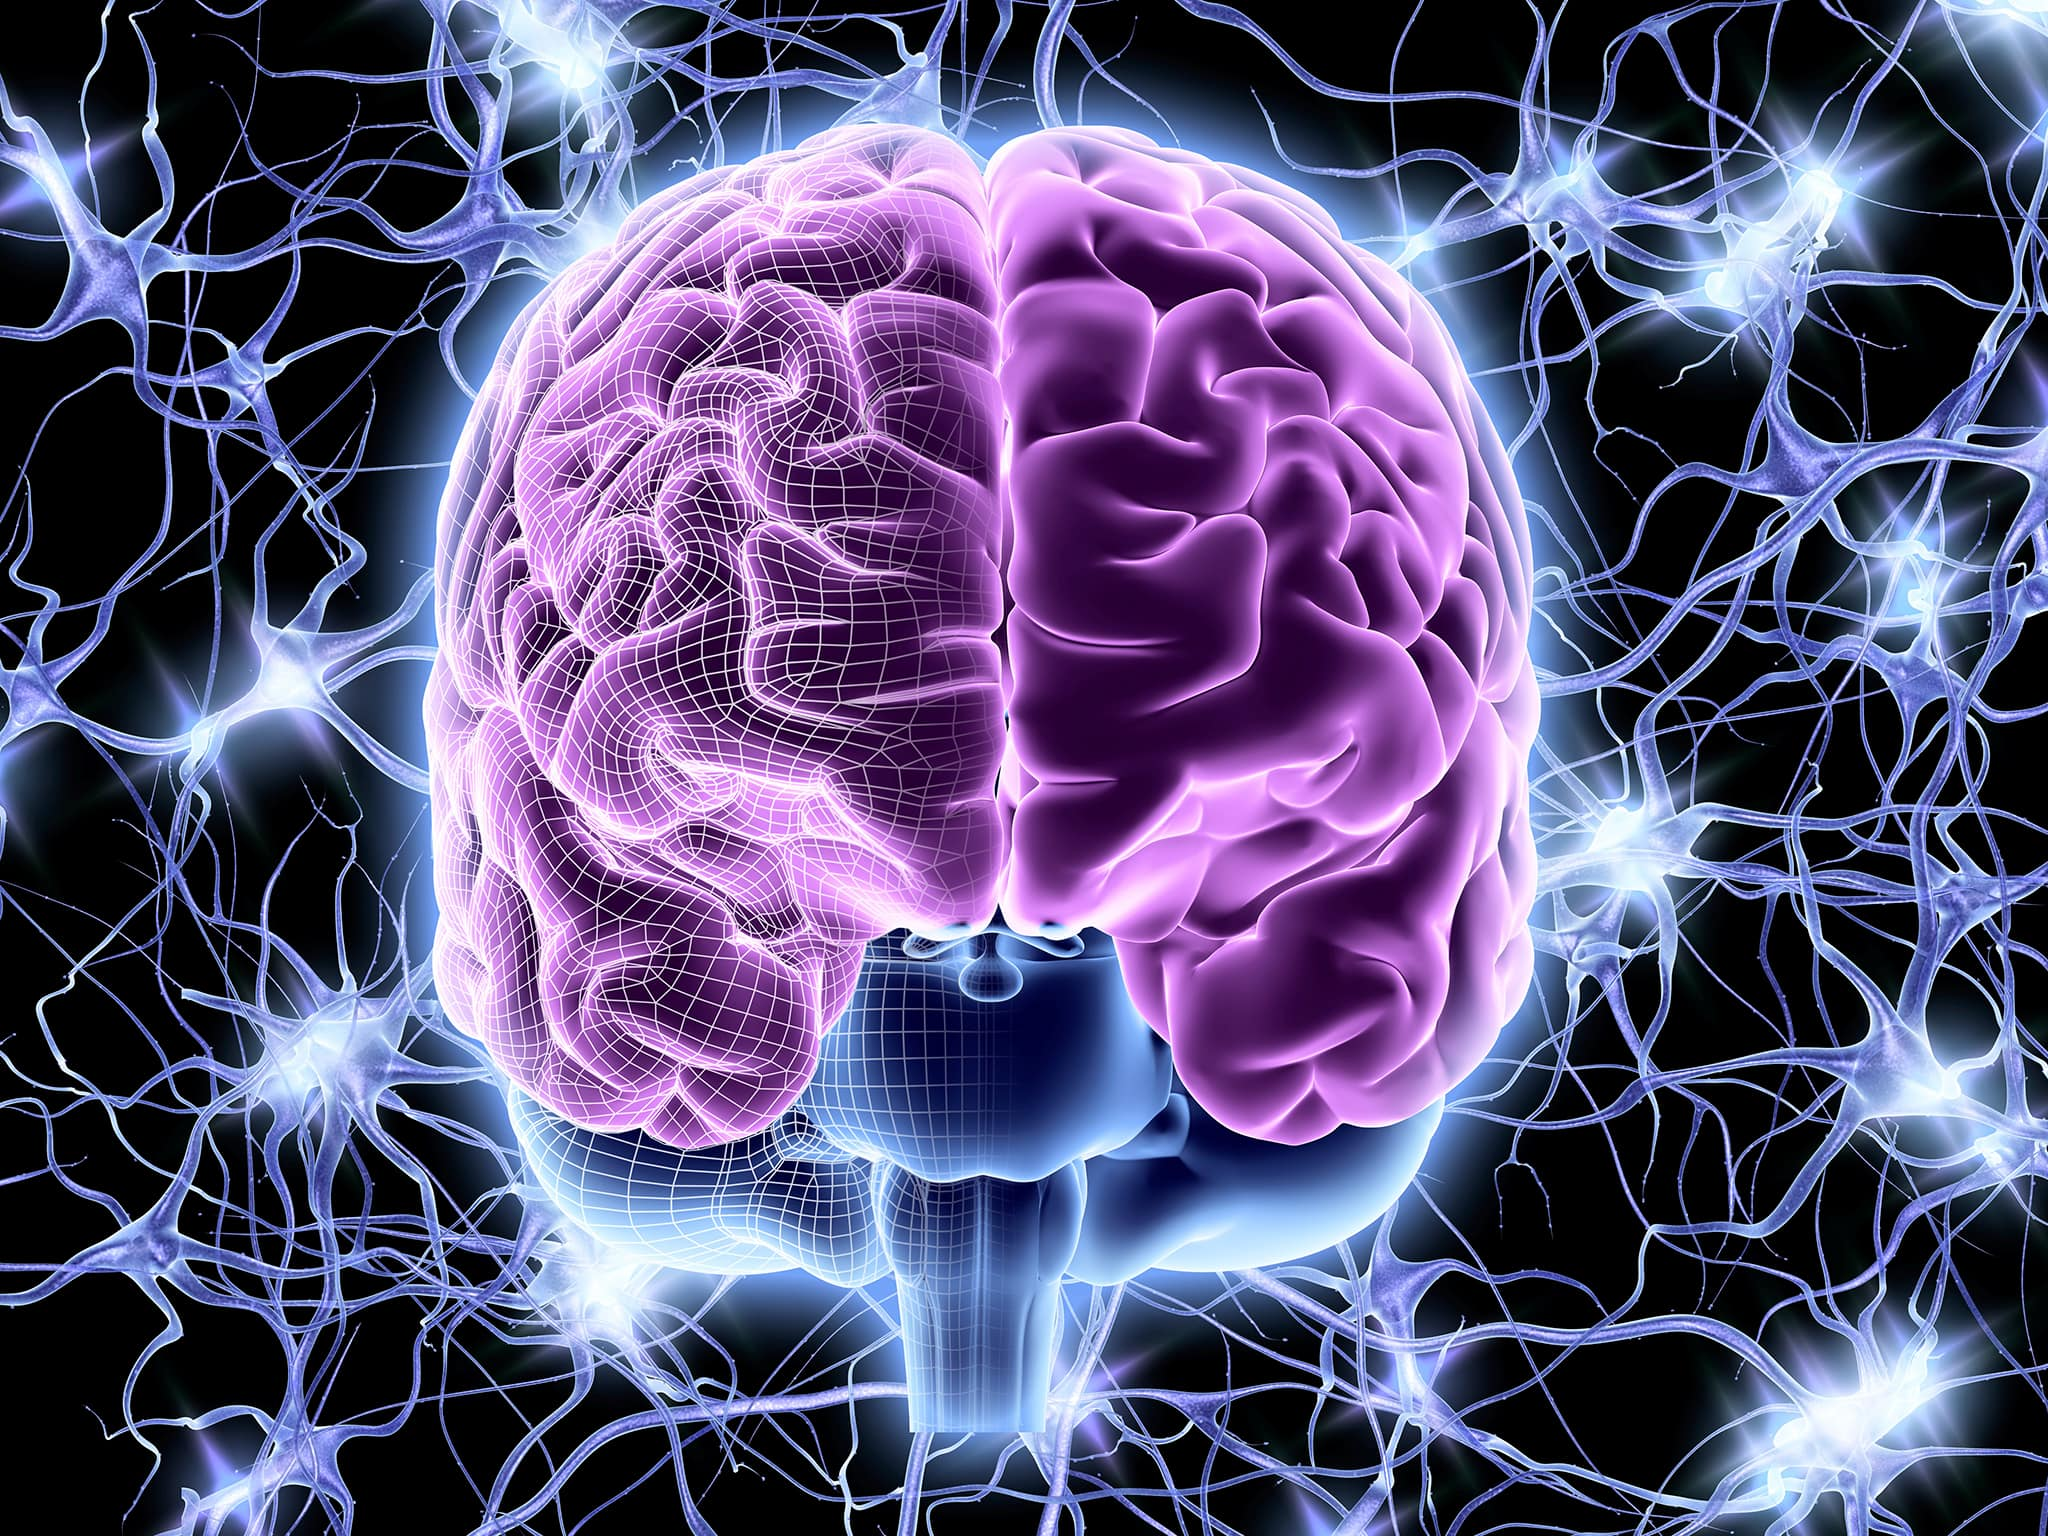 Participants Needed for Research in Epilepsy